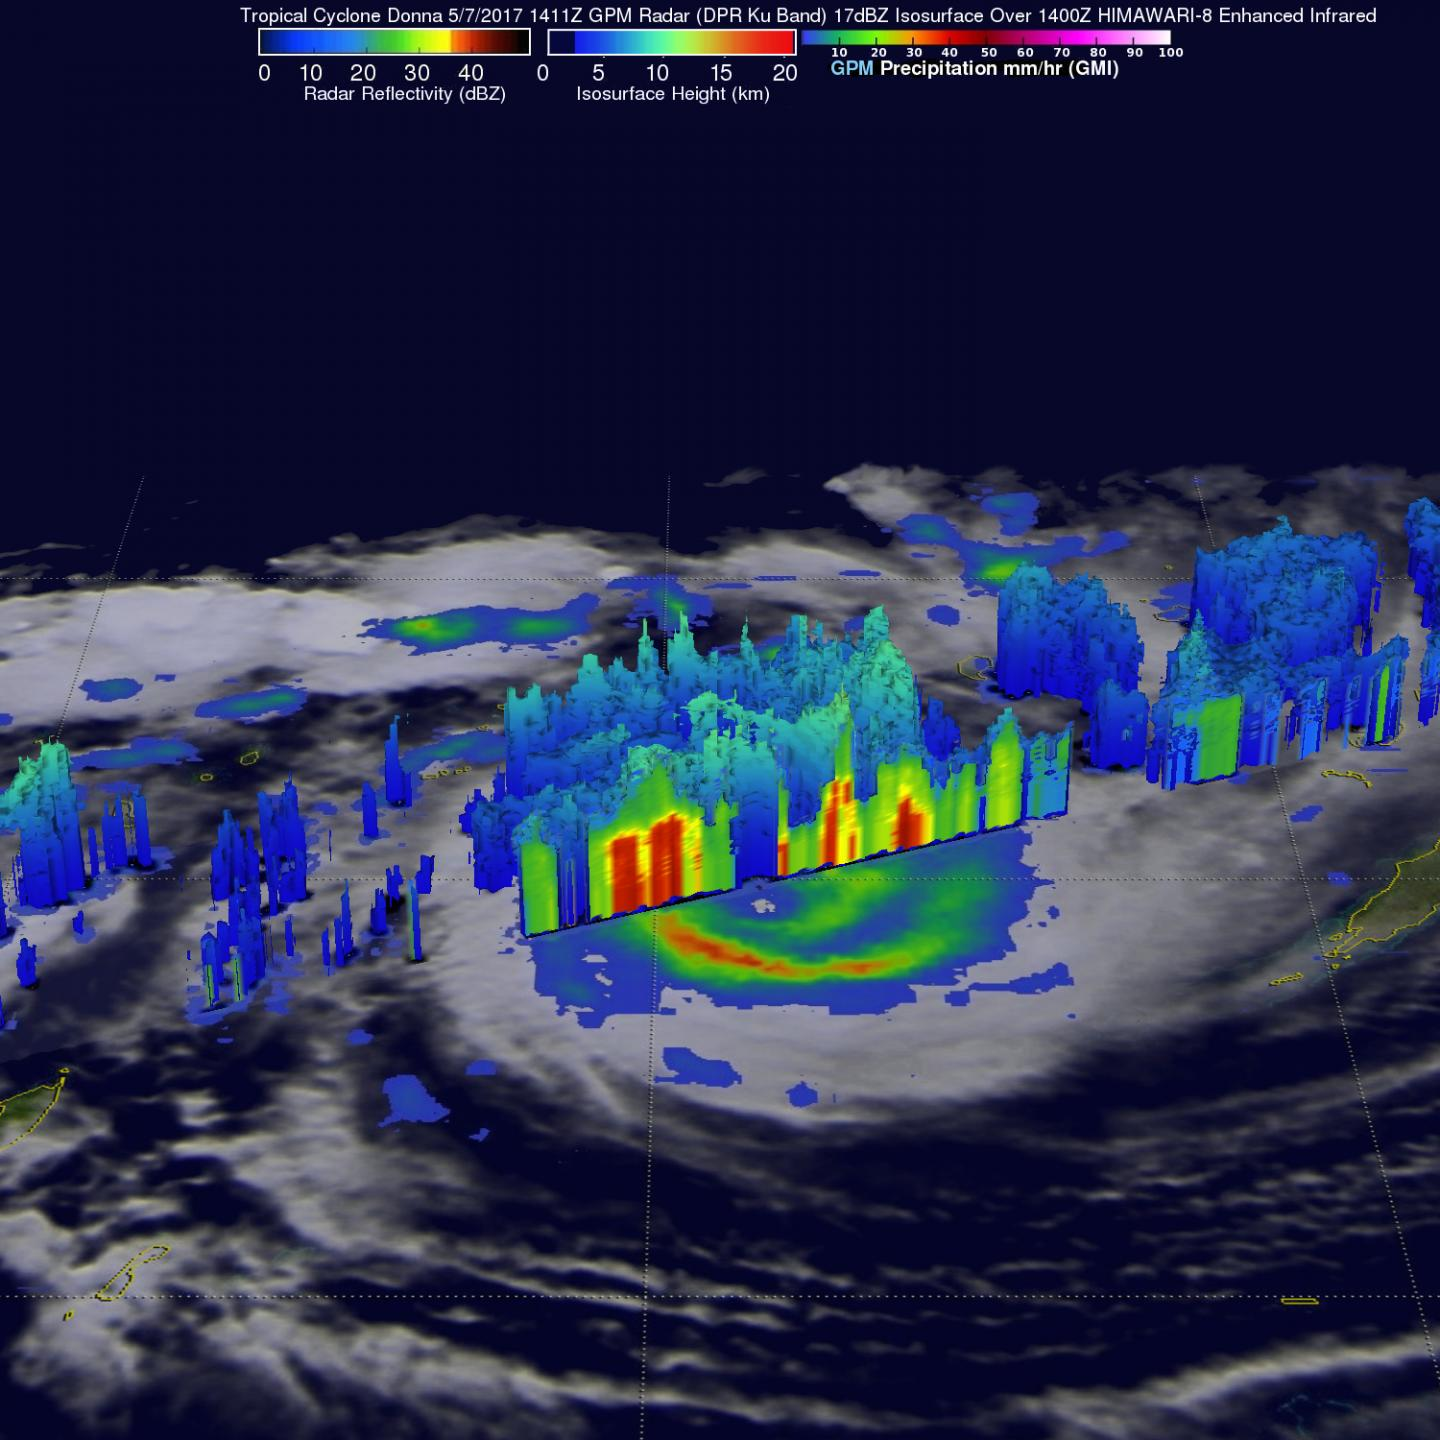 GPM Image of Donna